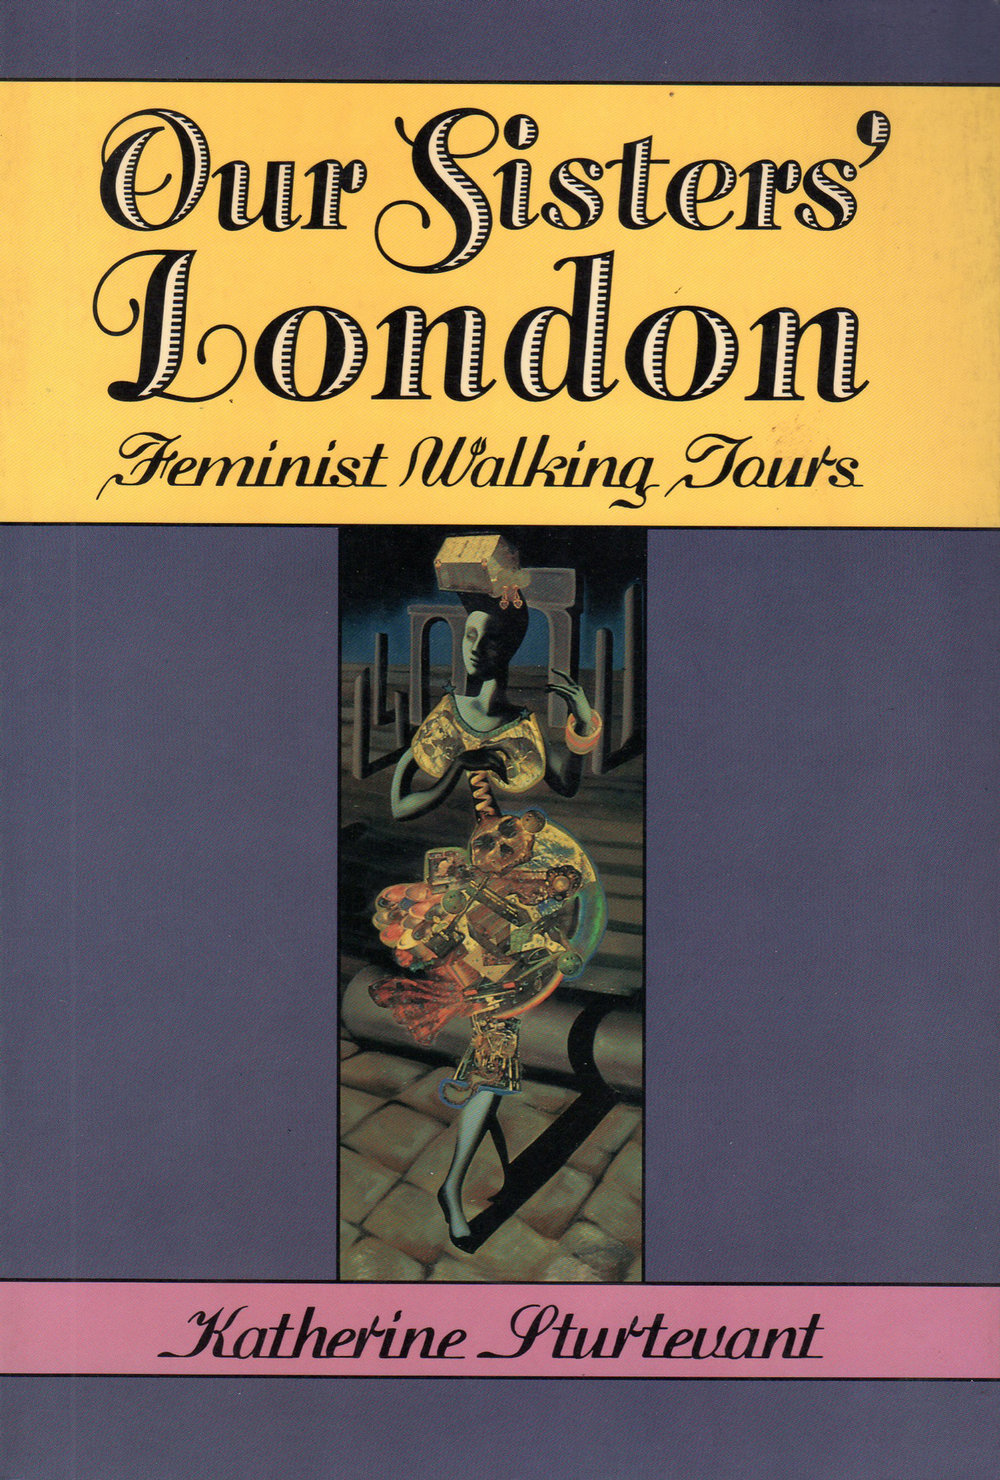 Katherine Sturtevant,  Our Sister's London Feminist Walking Tours , 1990, Chicago Review Press : Chicago